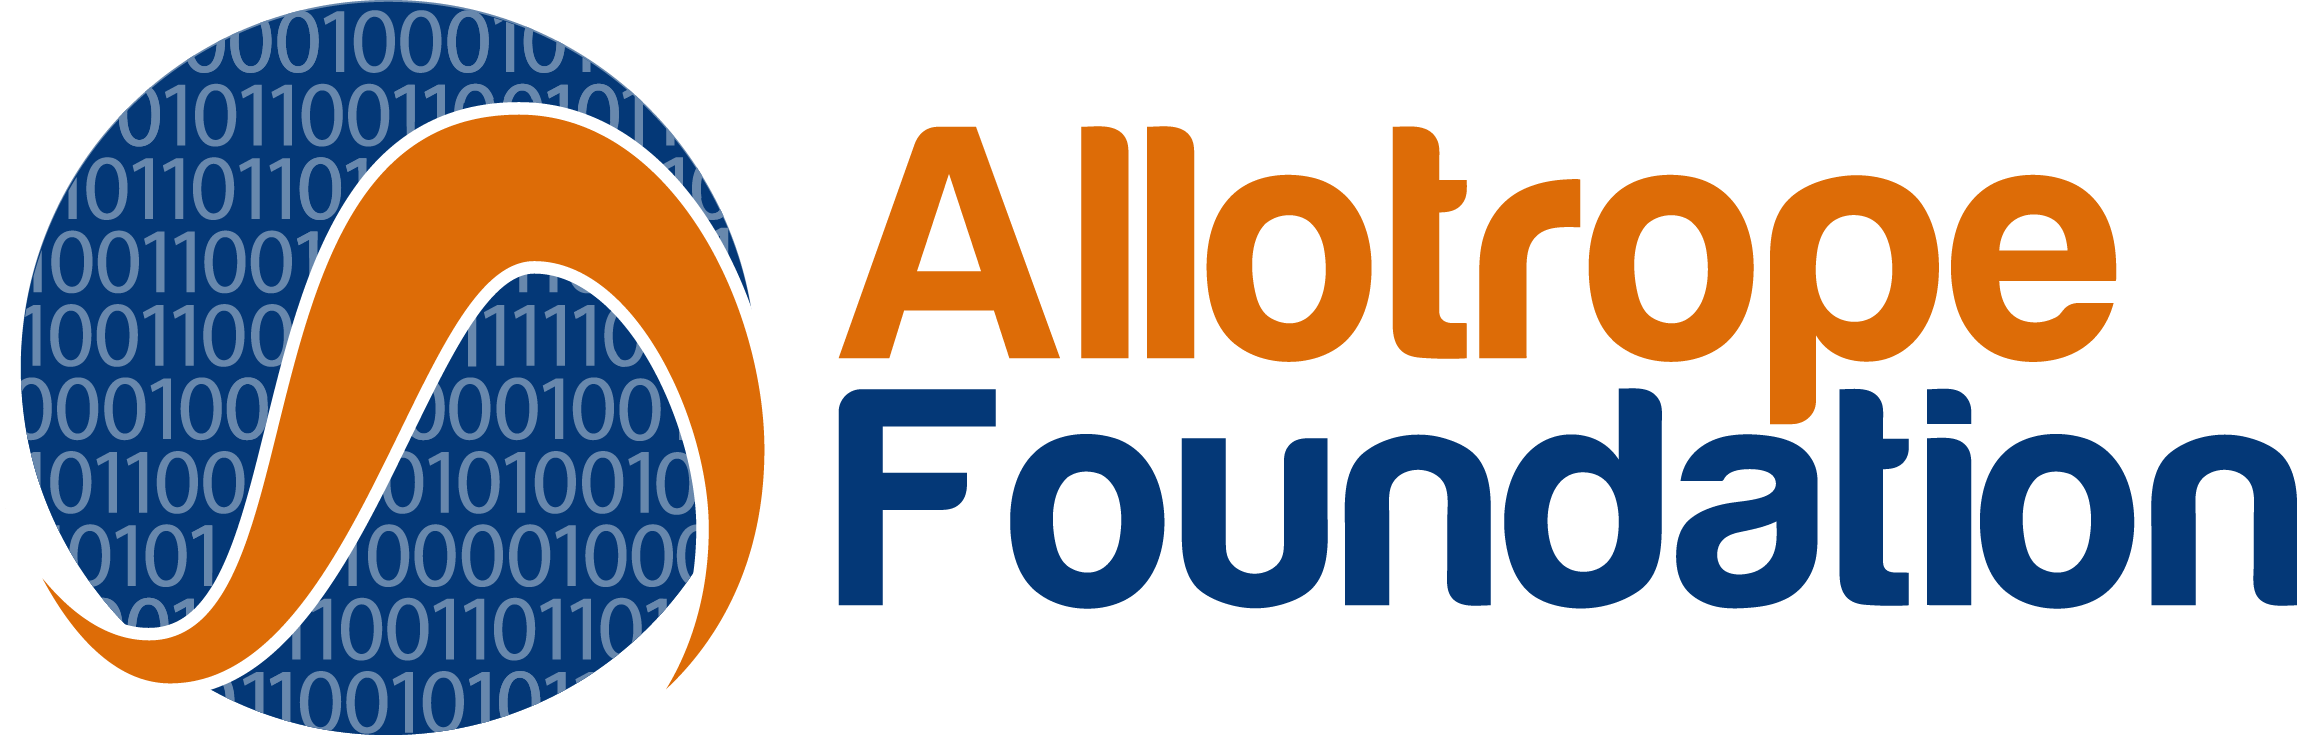 Allotrope Foundation